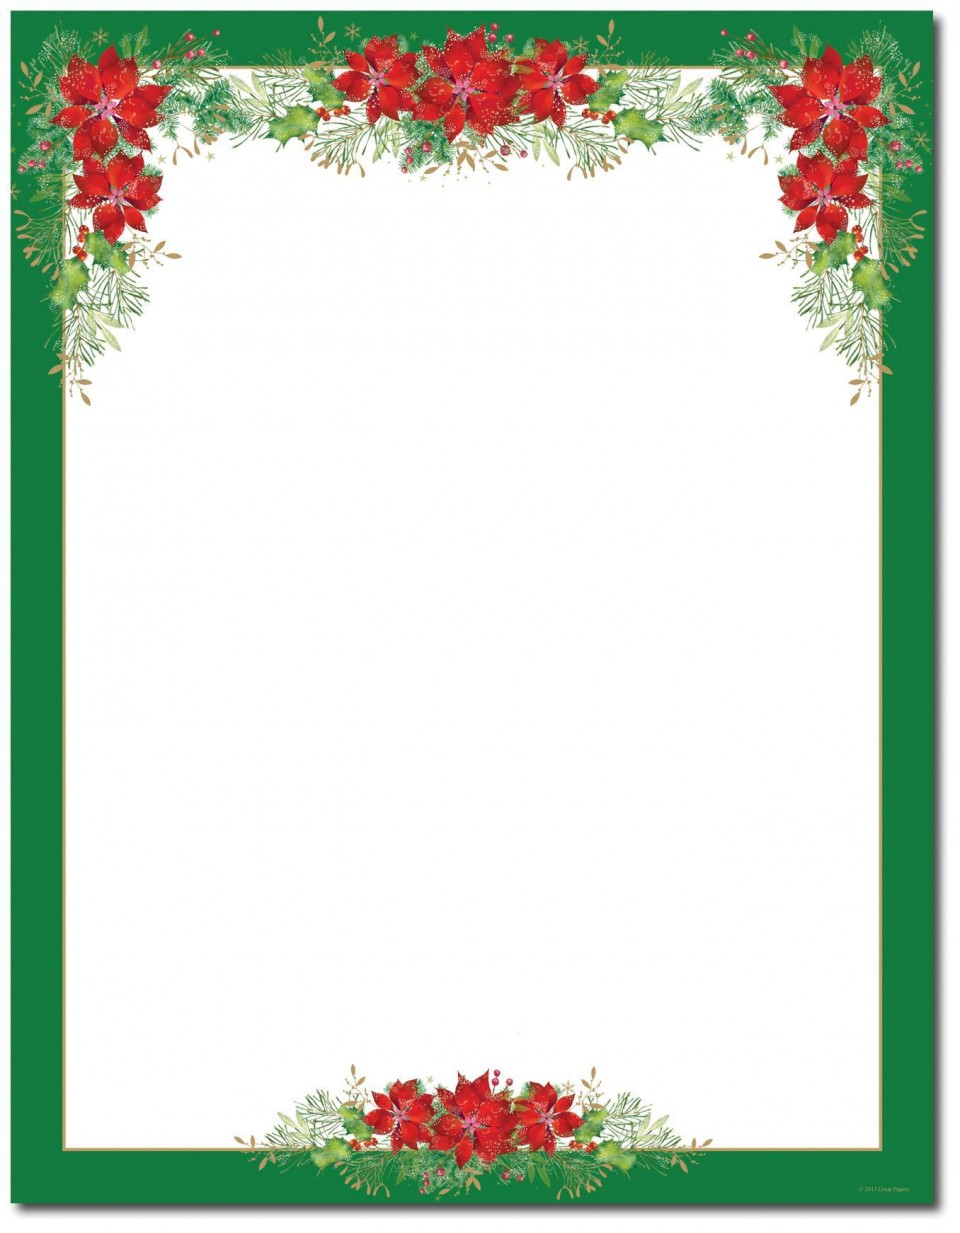 007 Wondrou Free Holiday Stationery Template For Word Image 960